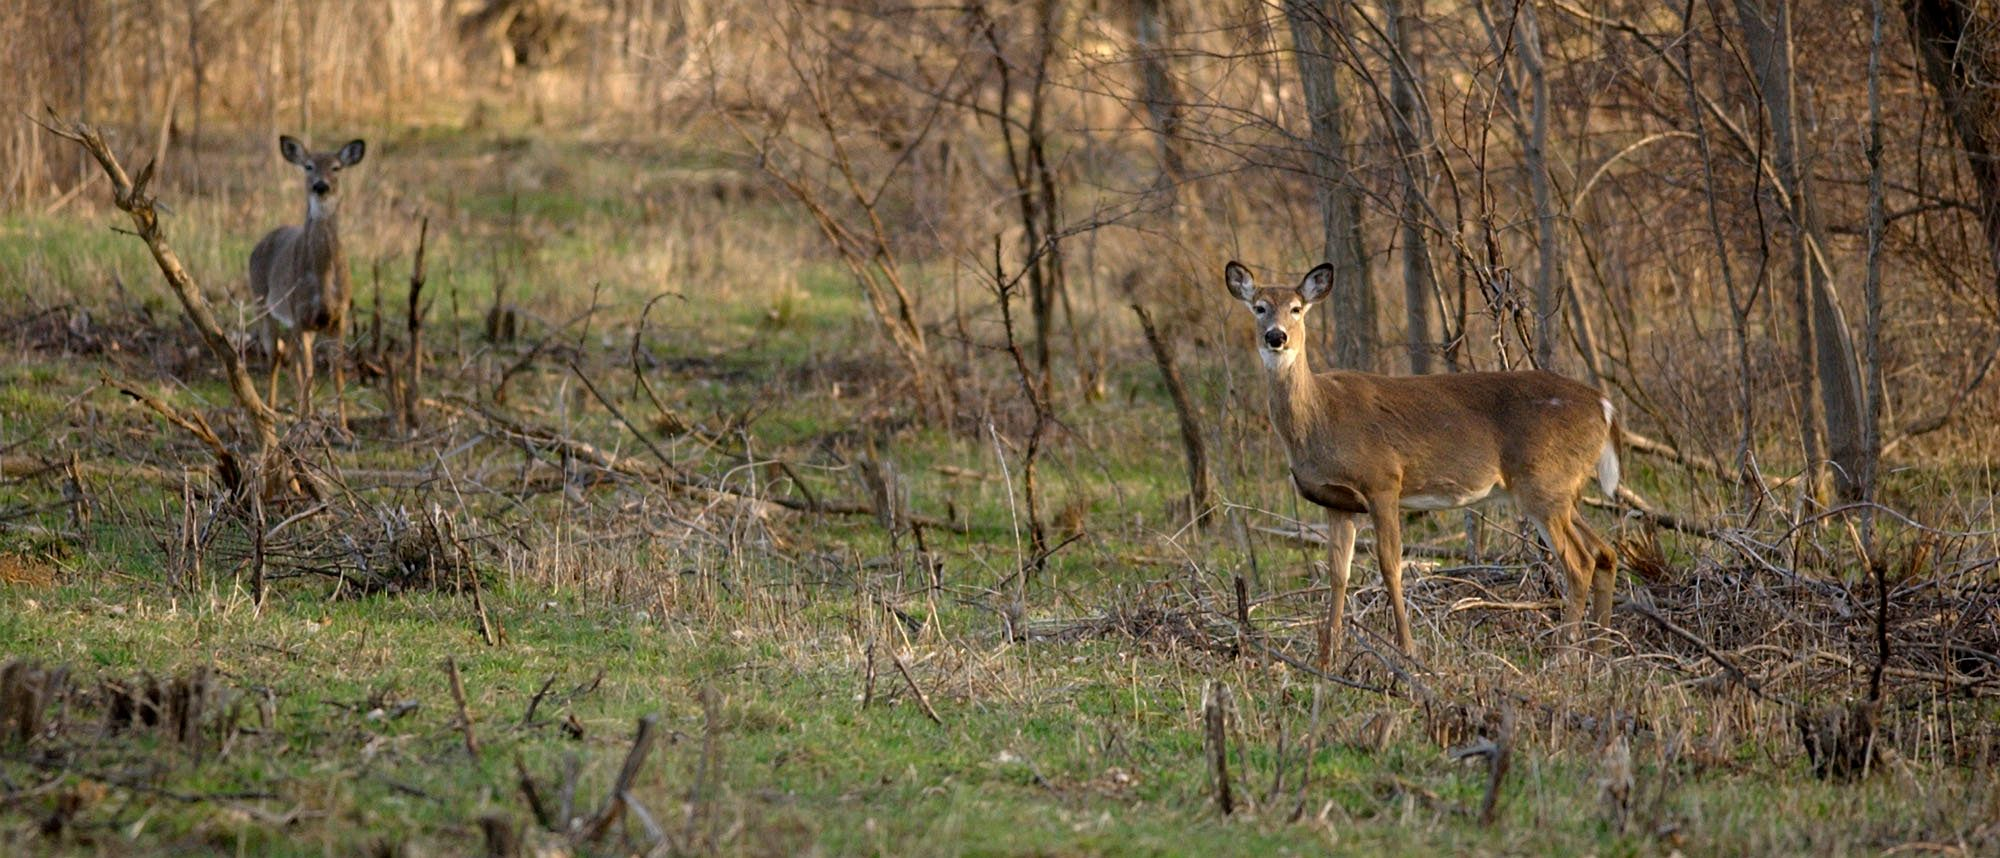 Authorities are urging hunters to take extra precautions to minimize potential exposure to the disease...